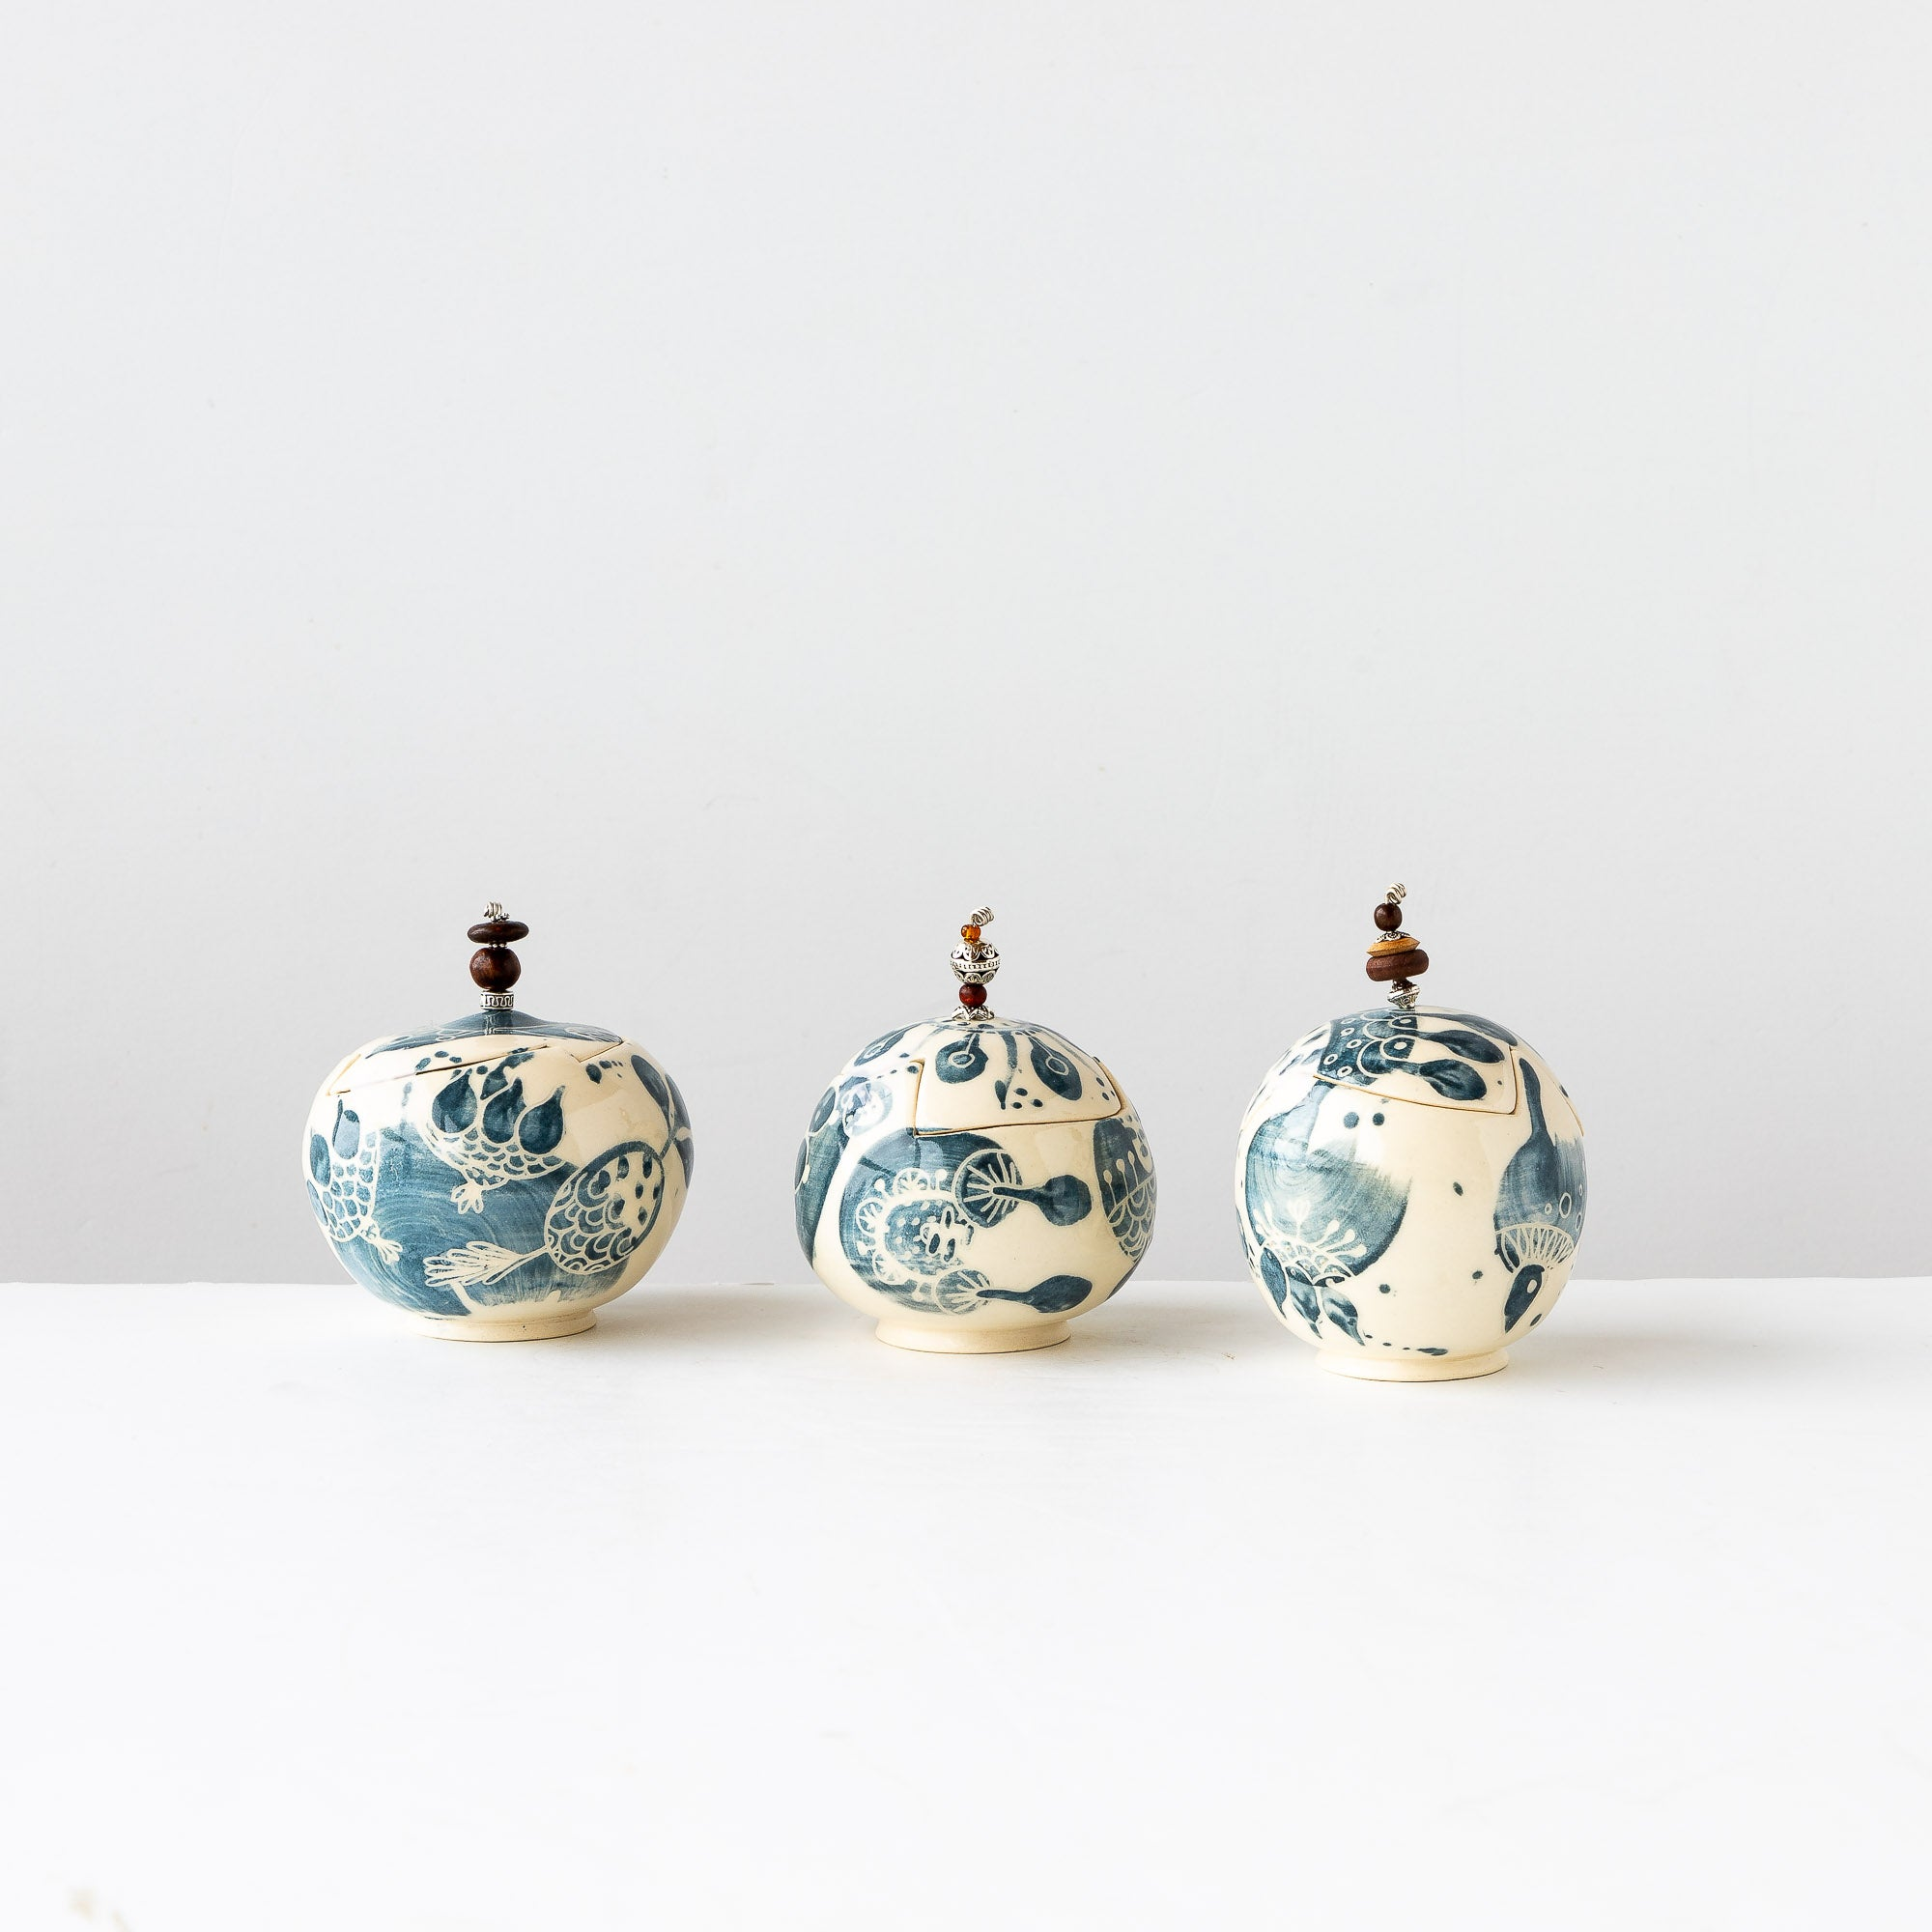 Three Round Blue Handmade Small Earthenware Gallipots - Sold by Chic & Basta